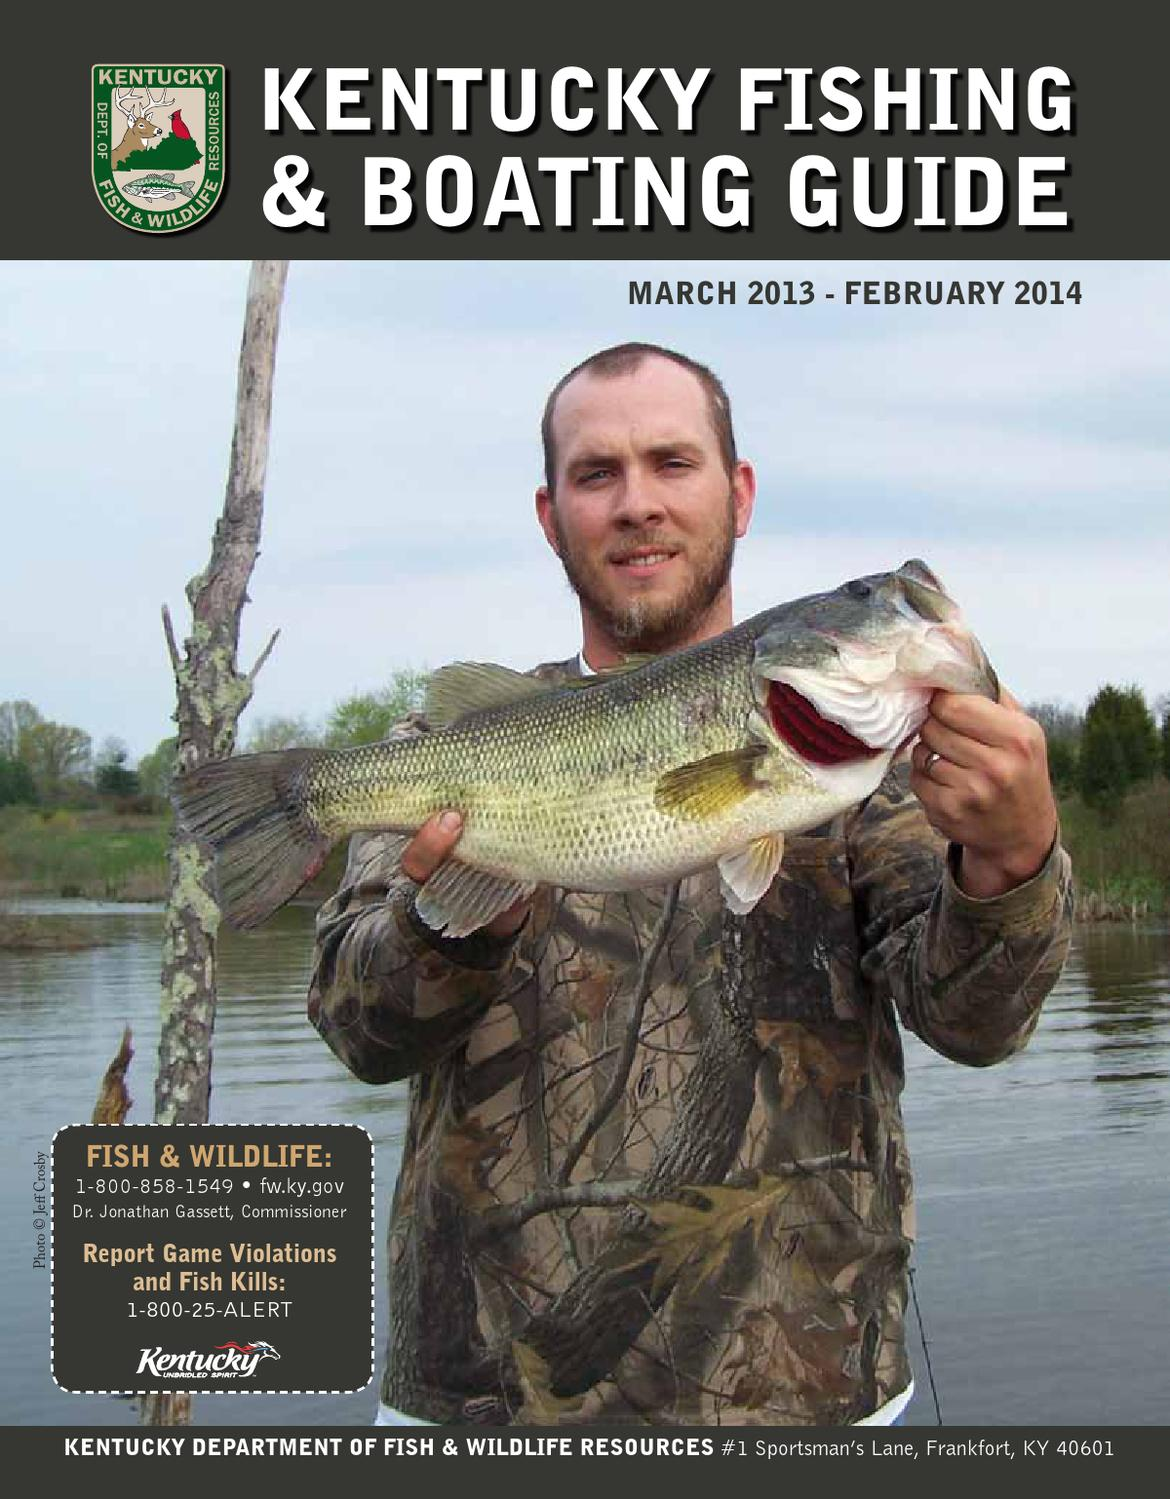 ky fishing and boating guide 2013 2014 by kentucky